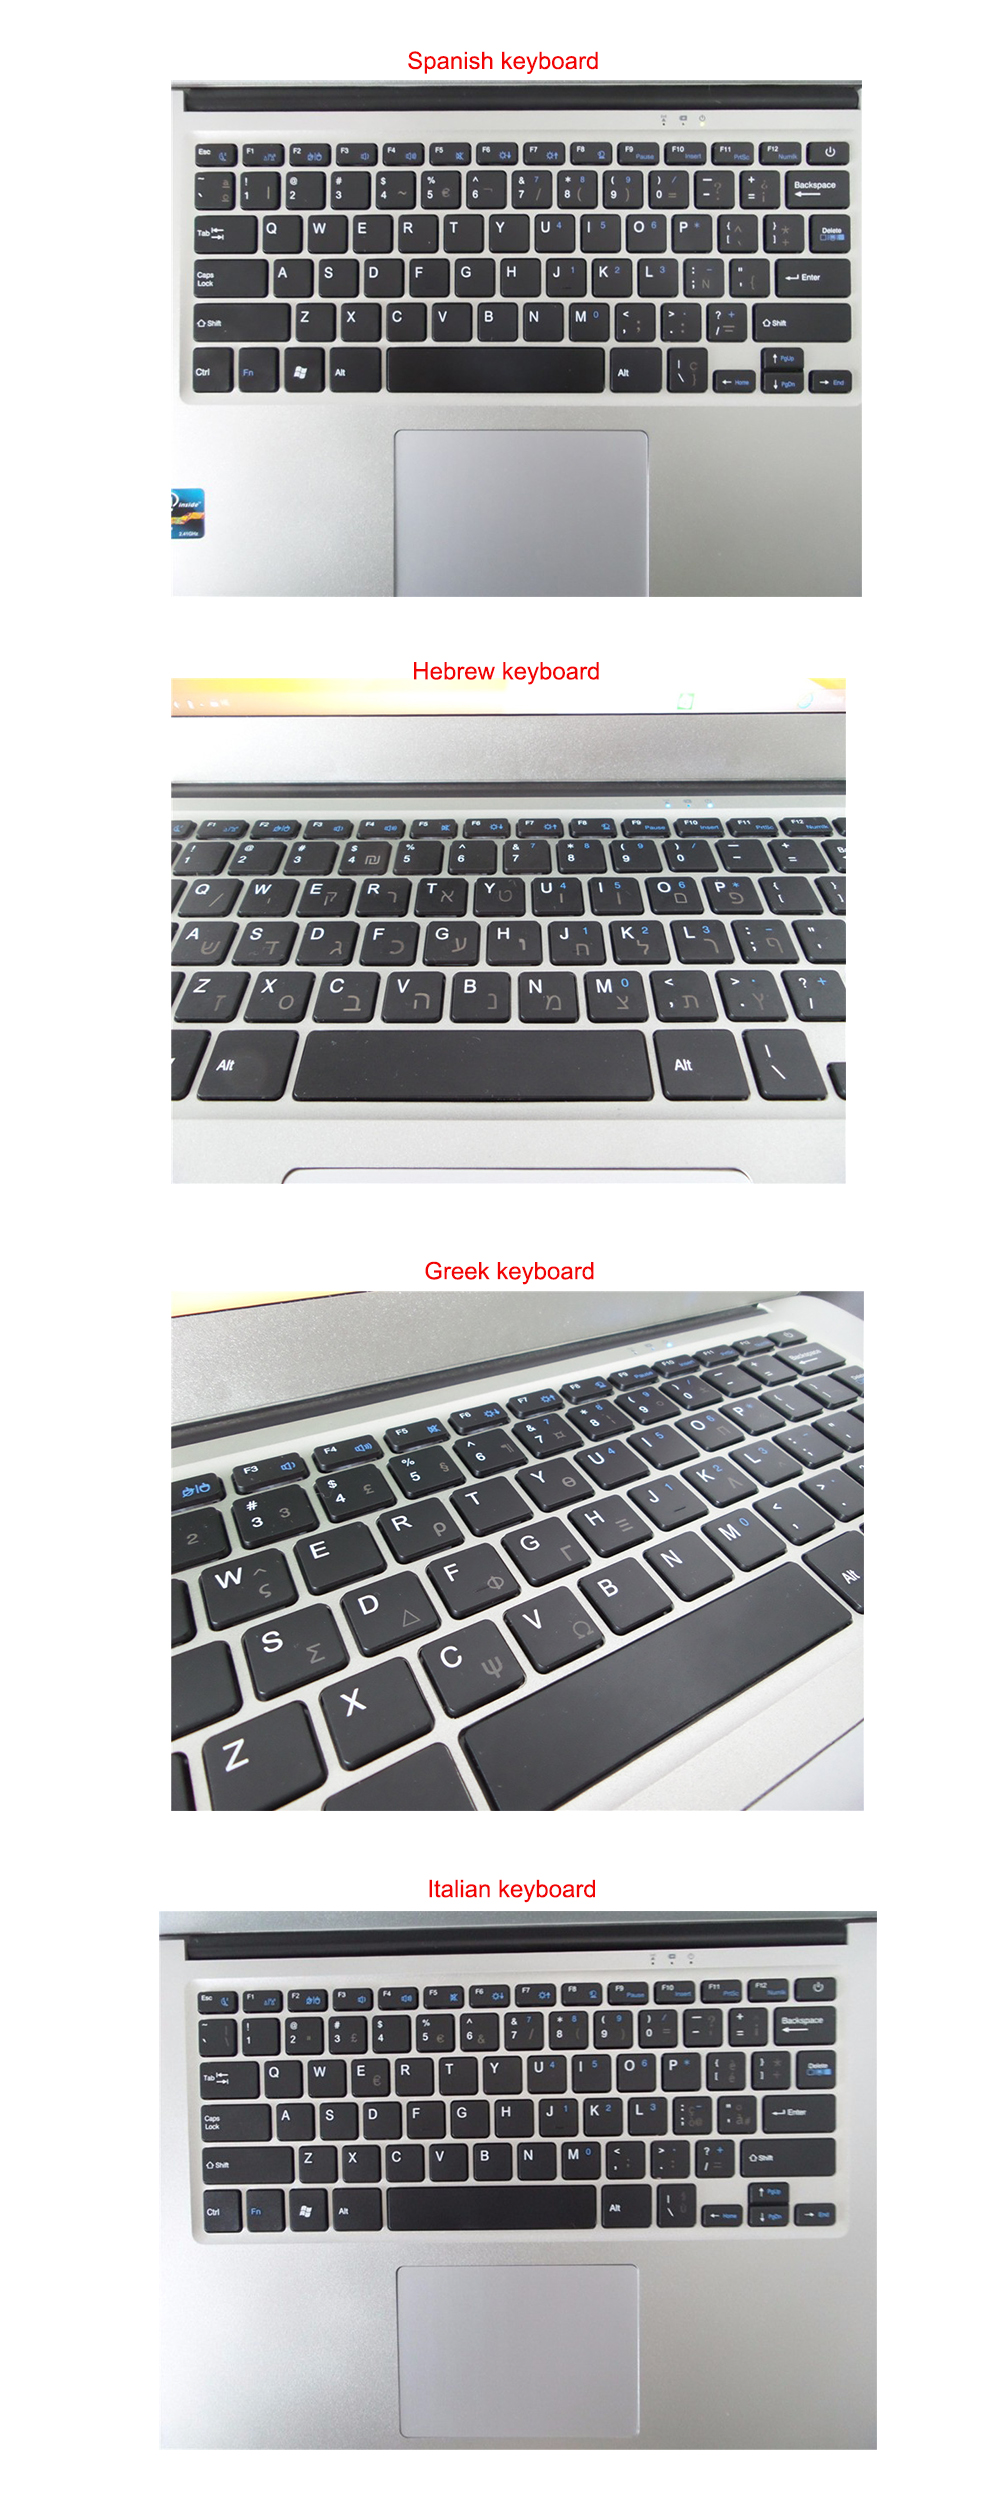 Expandable hard drive 4G RAM 500G HDD 2017 14 inch laptop computer windows 10 system built in camera with wifi